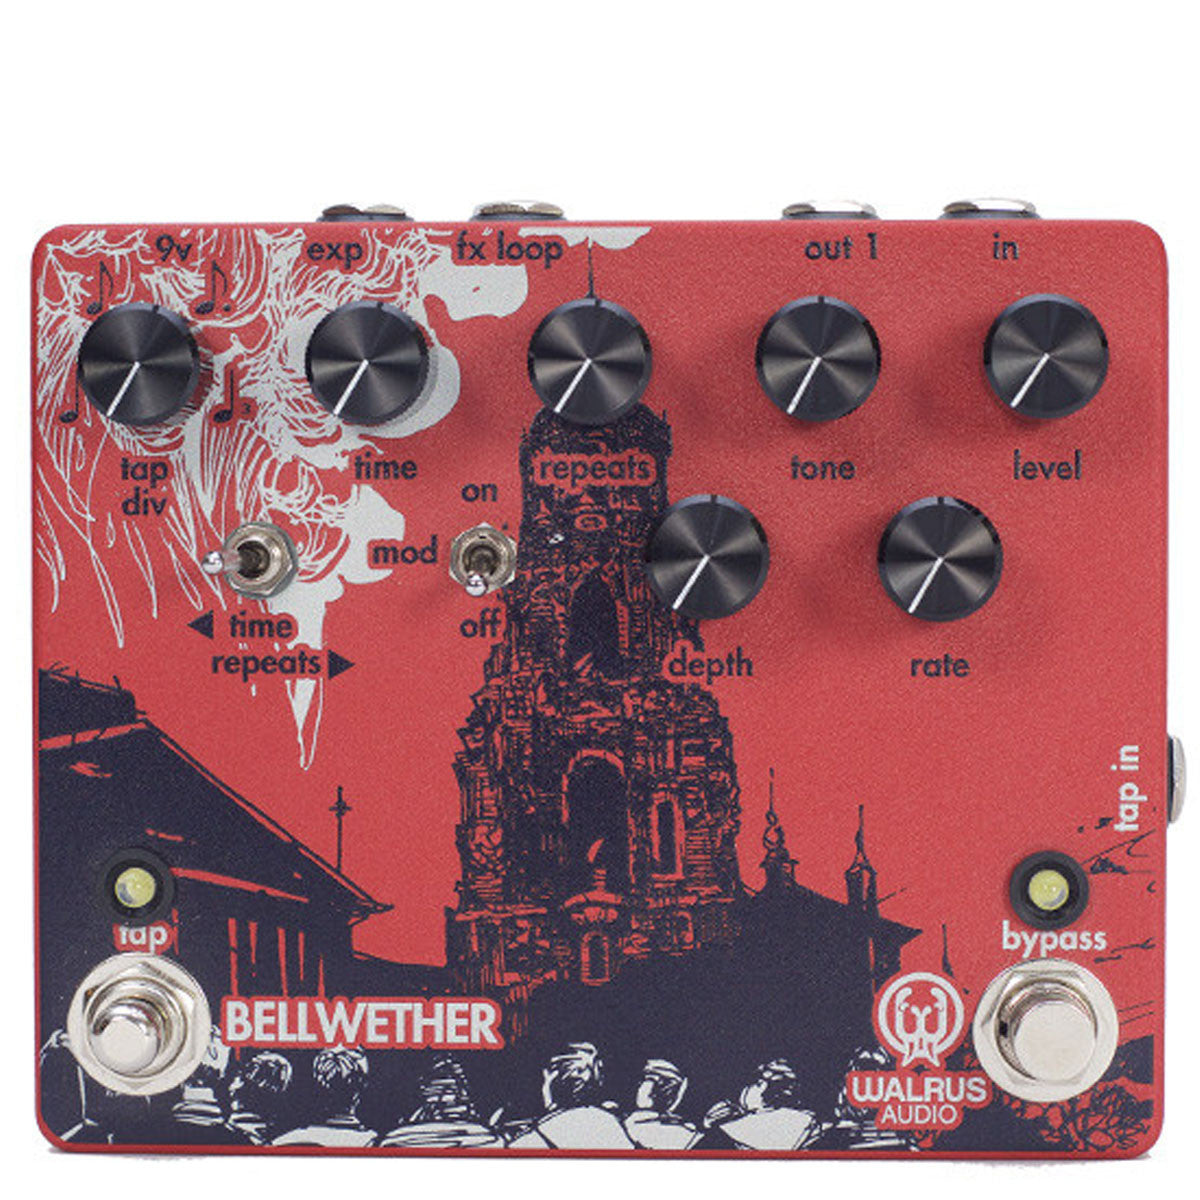 Walrus Audio Bellwether Analog Delay | Lucky Fret Music Co.